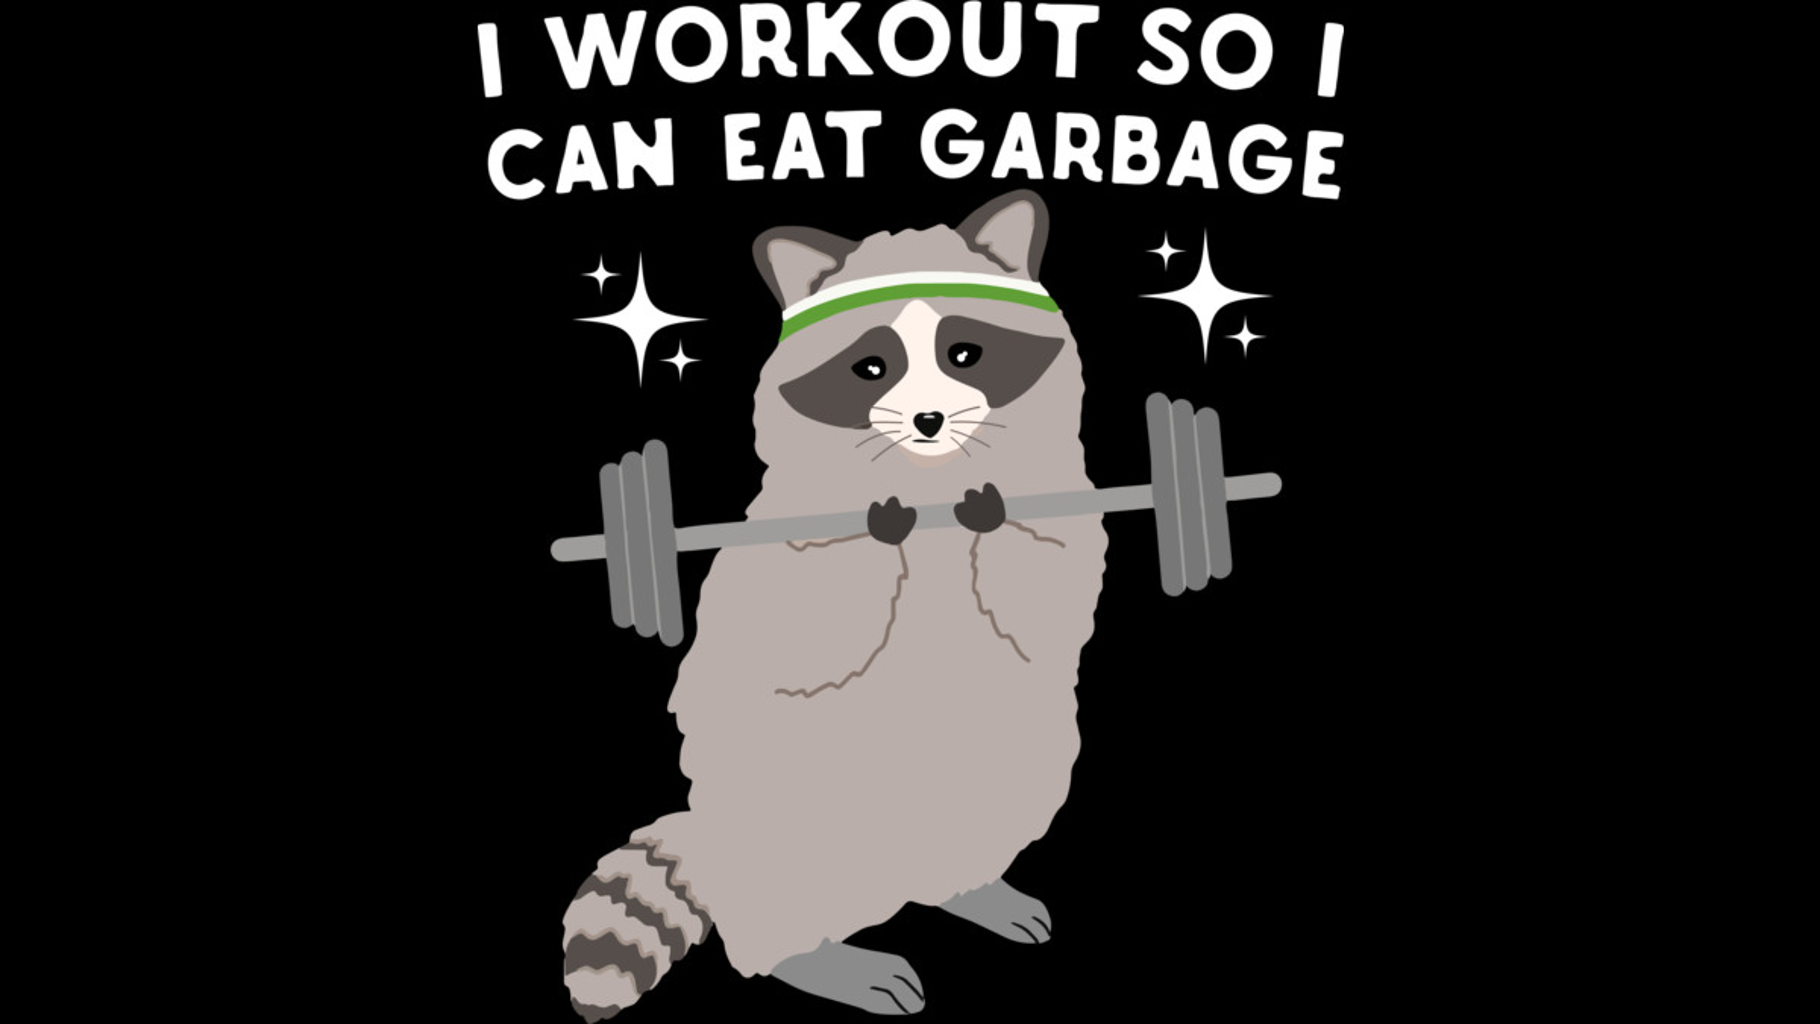 Design by Humans: I Workout So I Can Eat Garbage